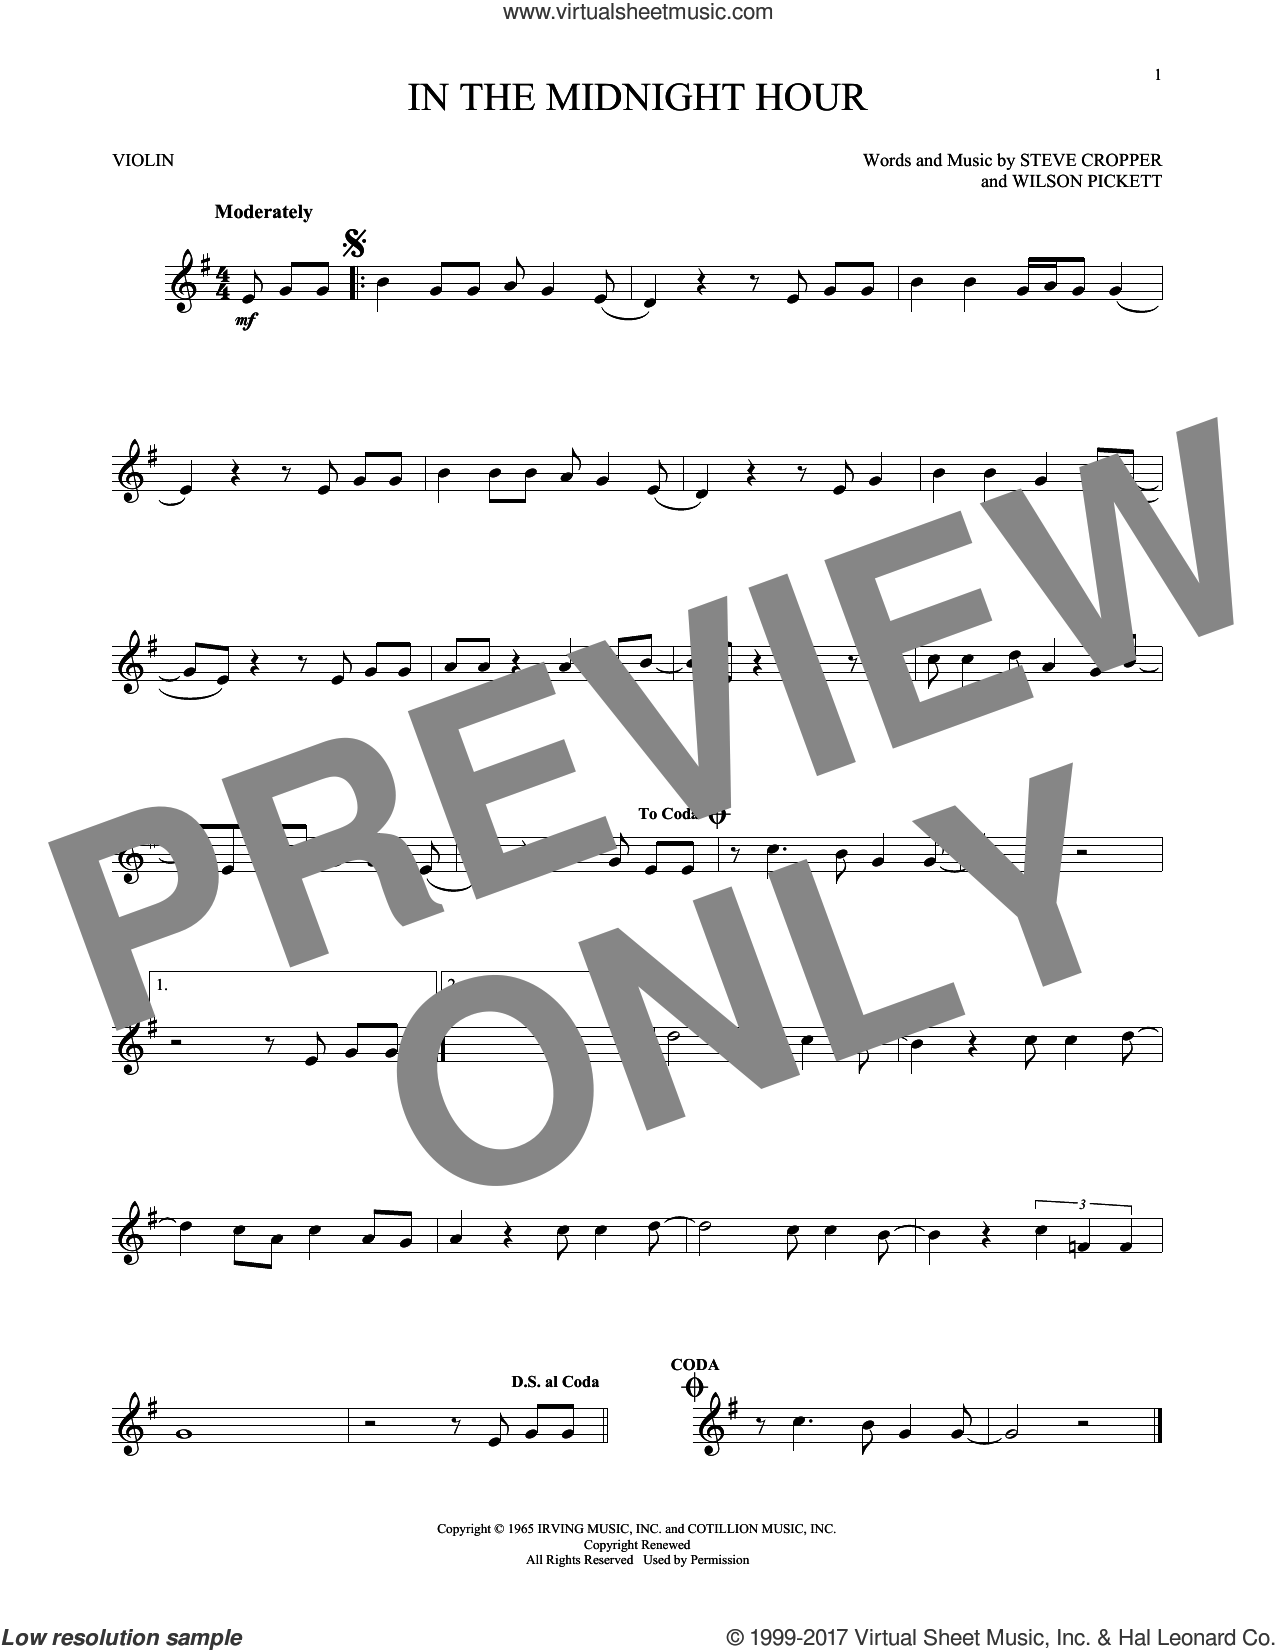 In The Midnight Hour sheet music for violin solo by Wilson Pickett and Steve Cropper, intermediate skill level